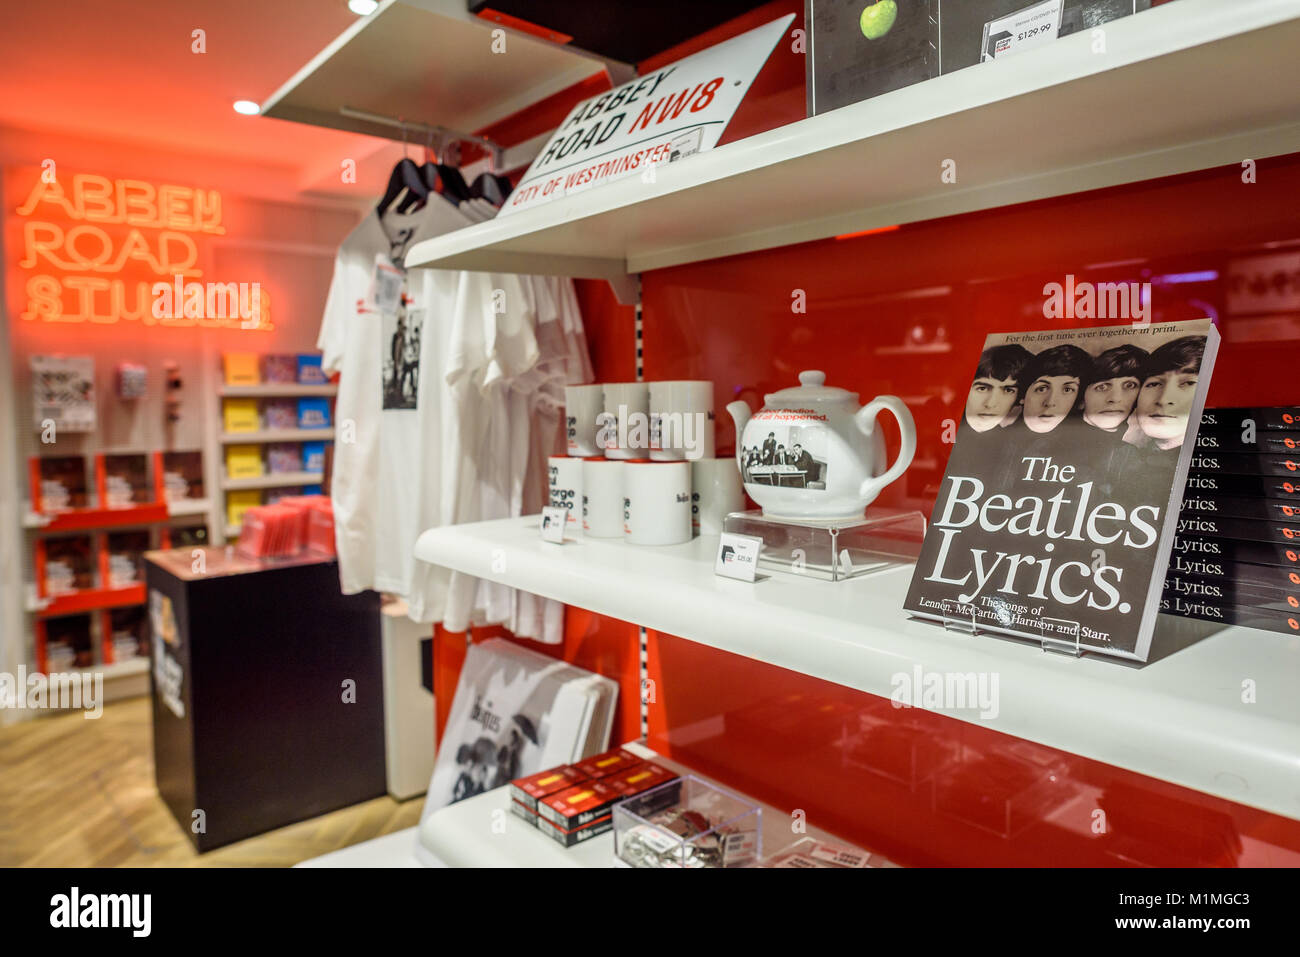 The Abbey Road shop selling various music related gifts, including Beatles related memorabilia. - Stock Image